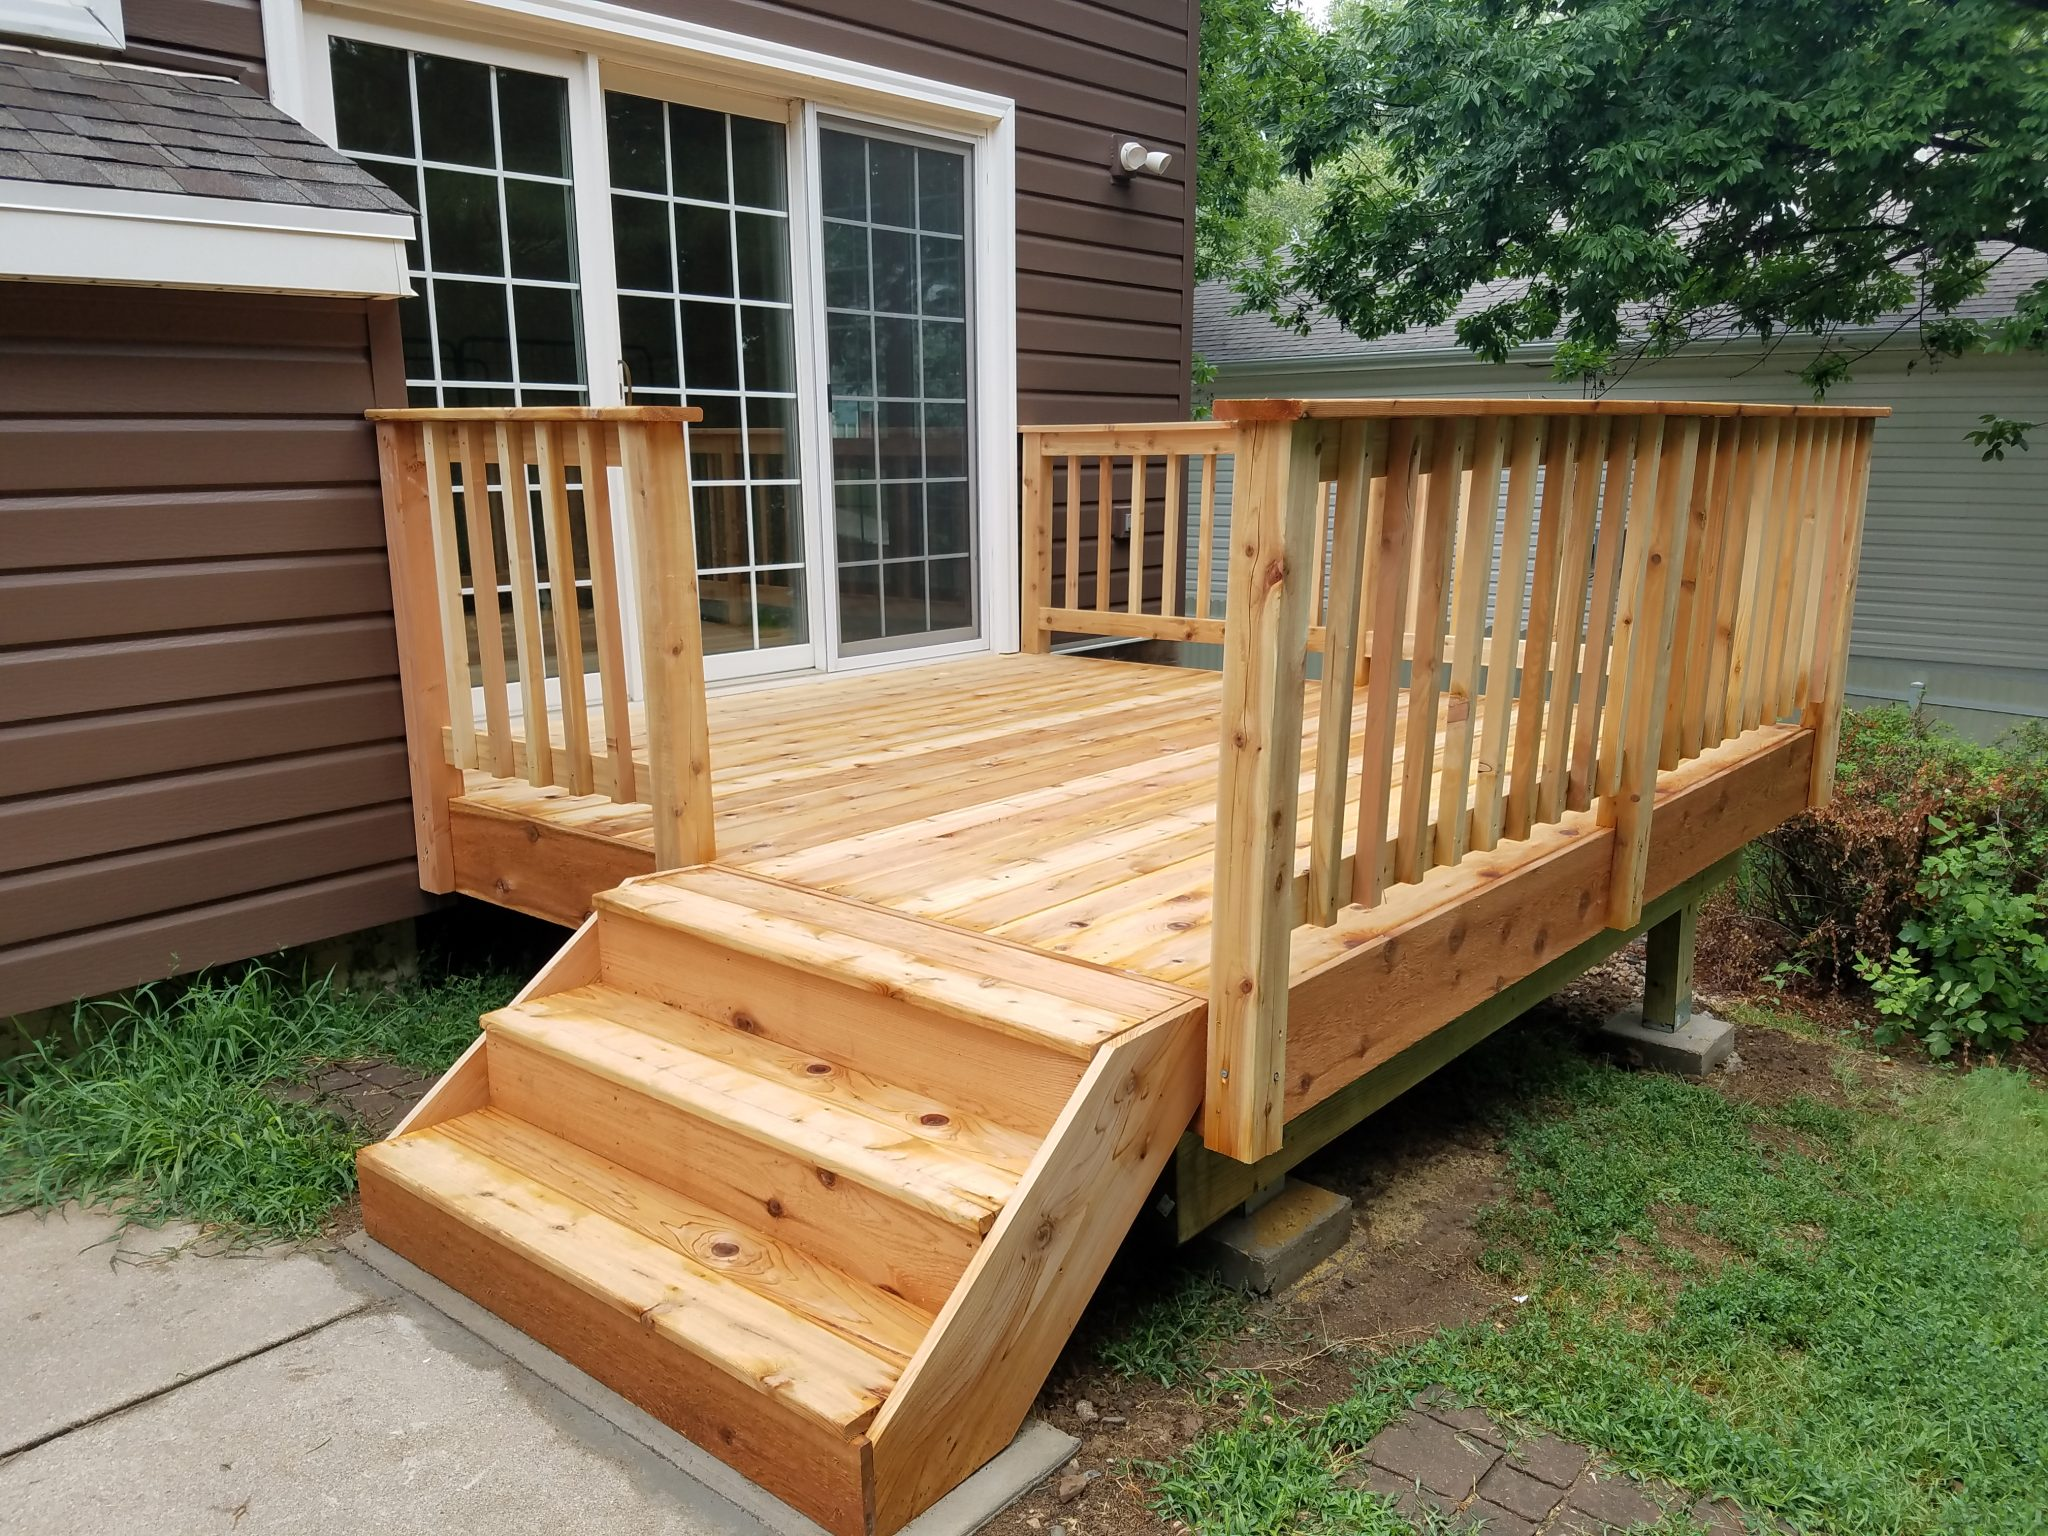 New Cedar Deck Installation